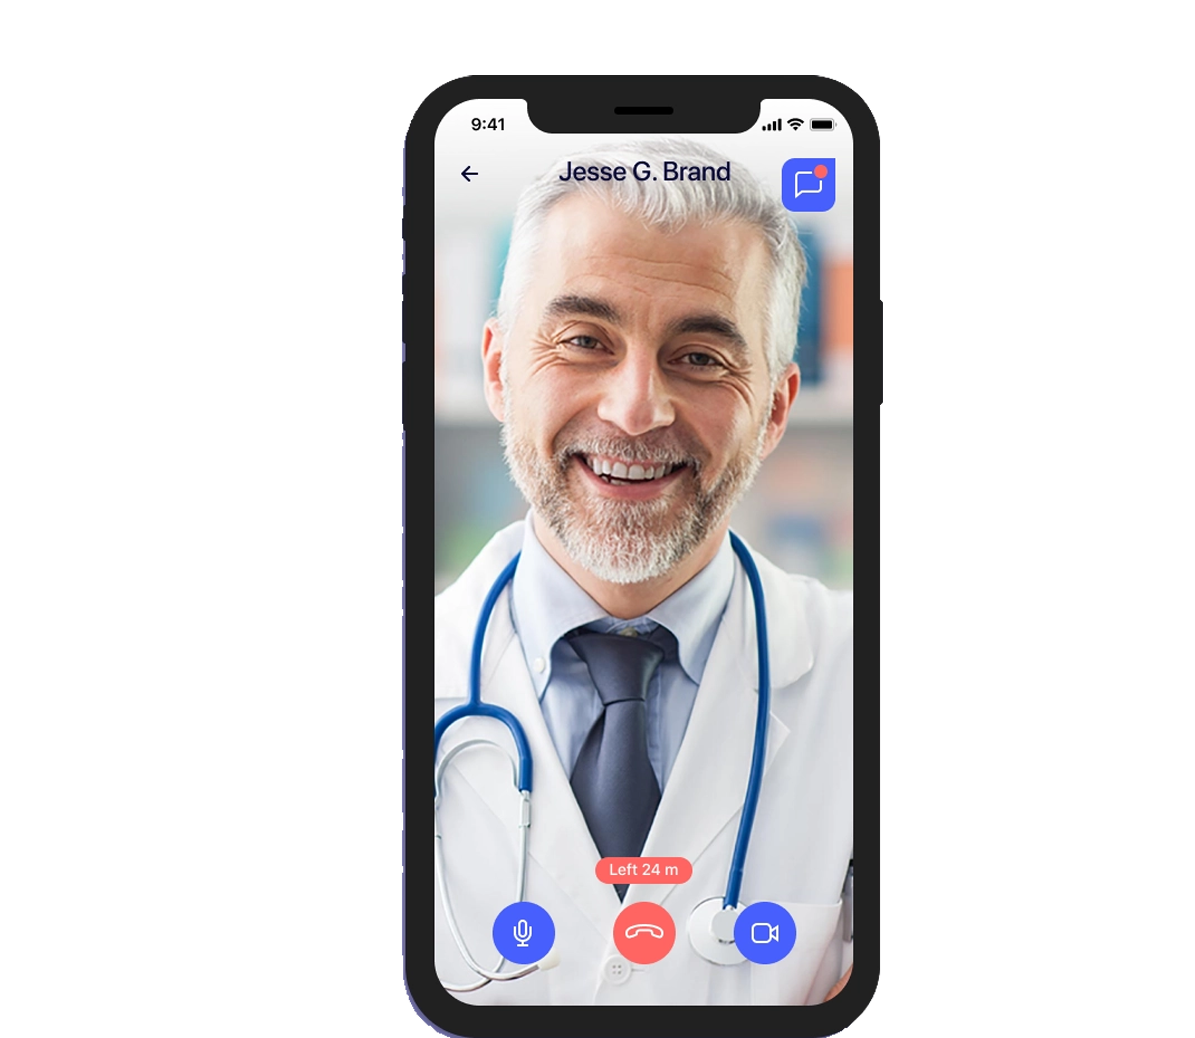 talk to a live doctor